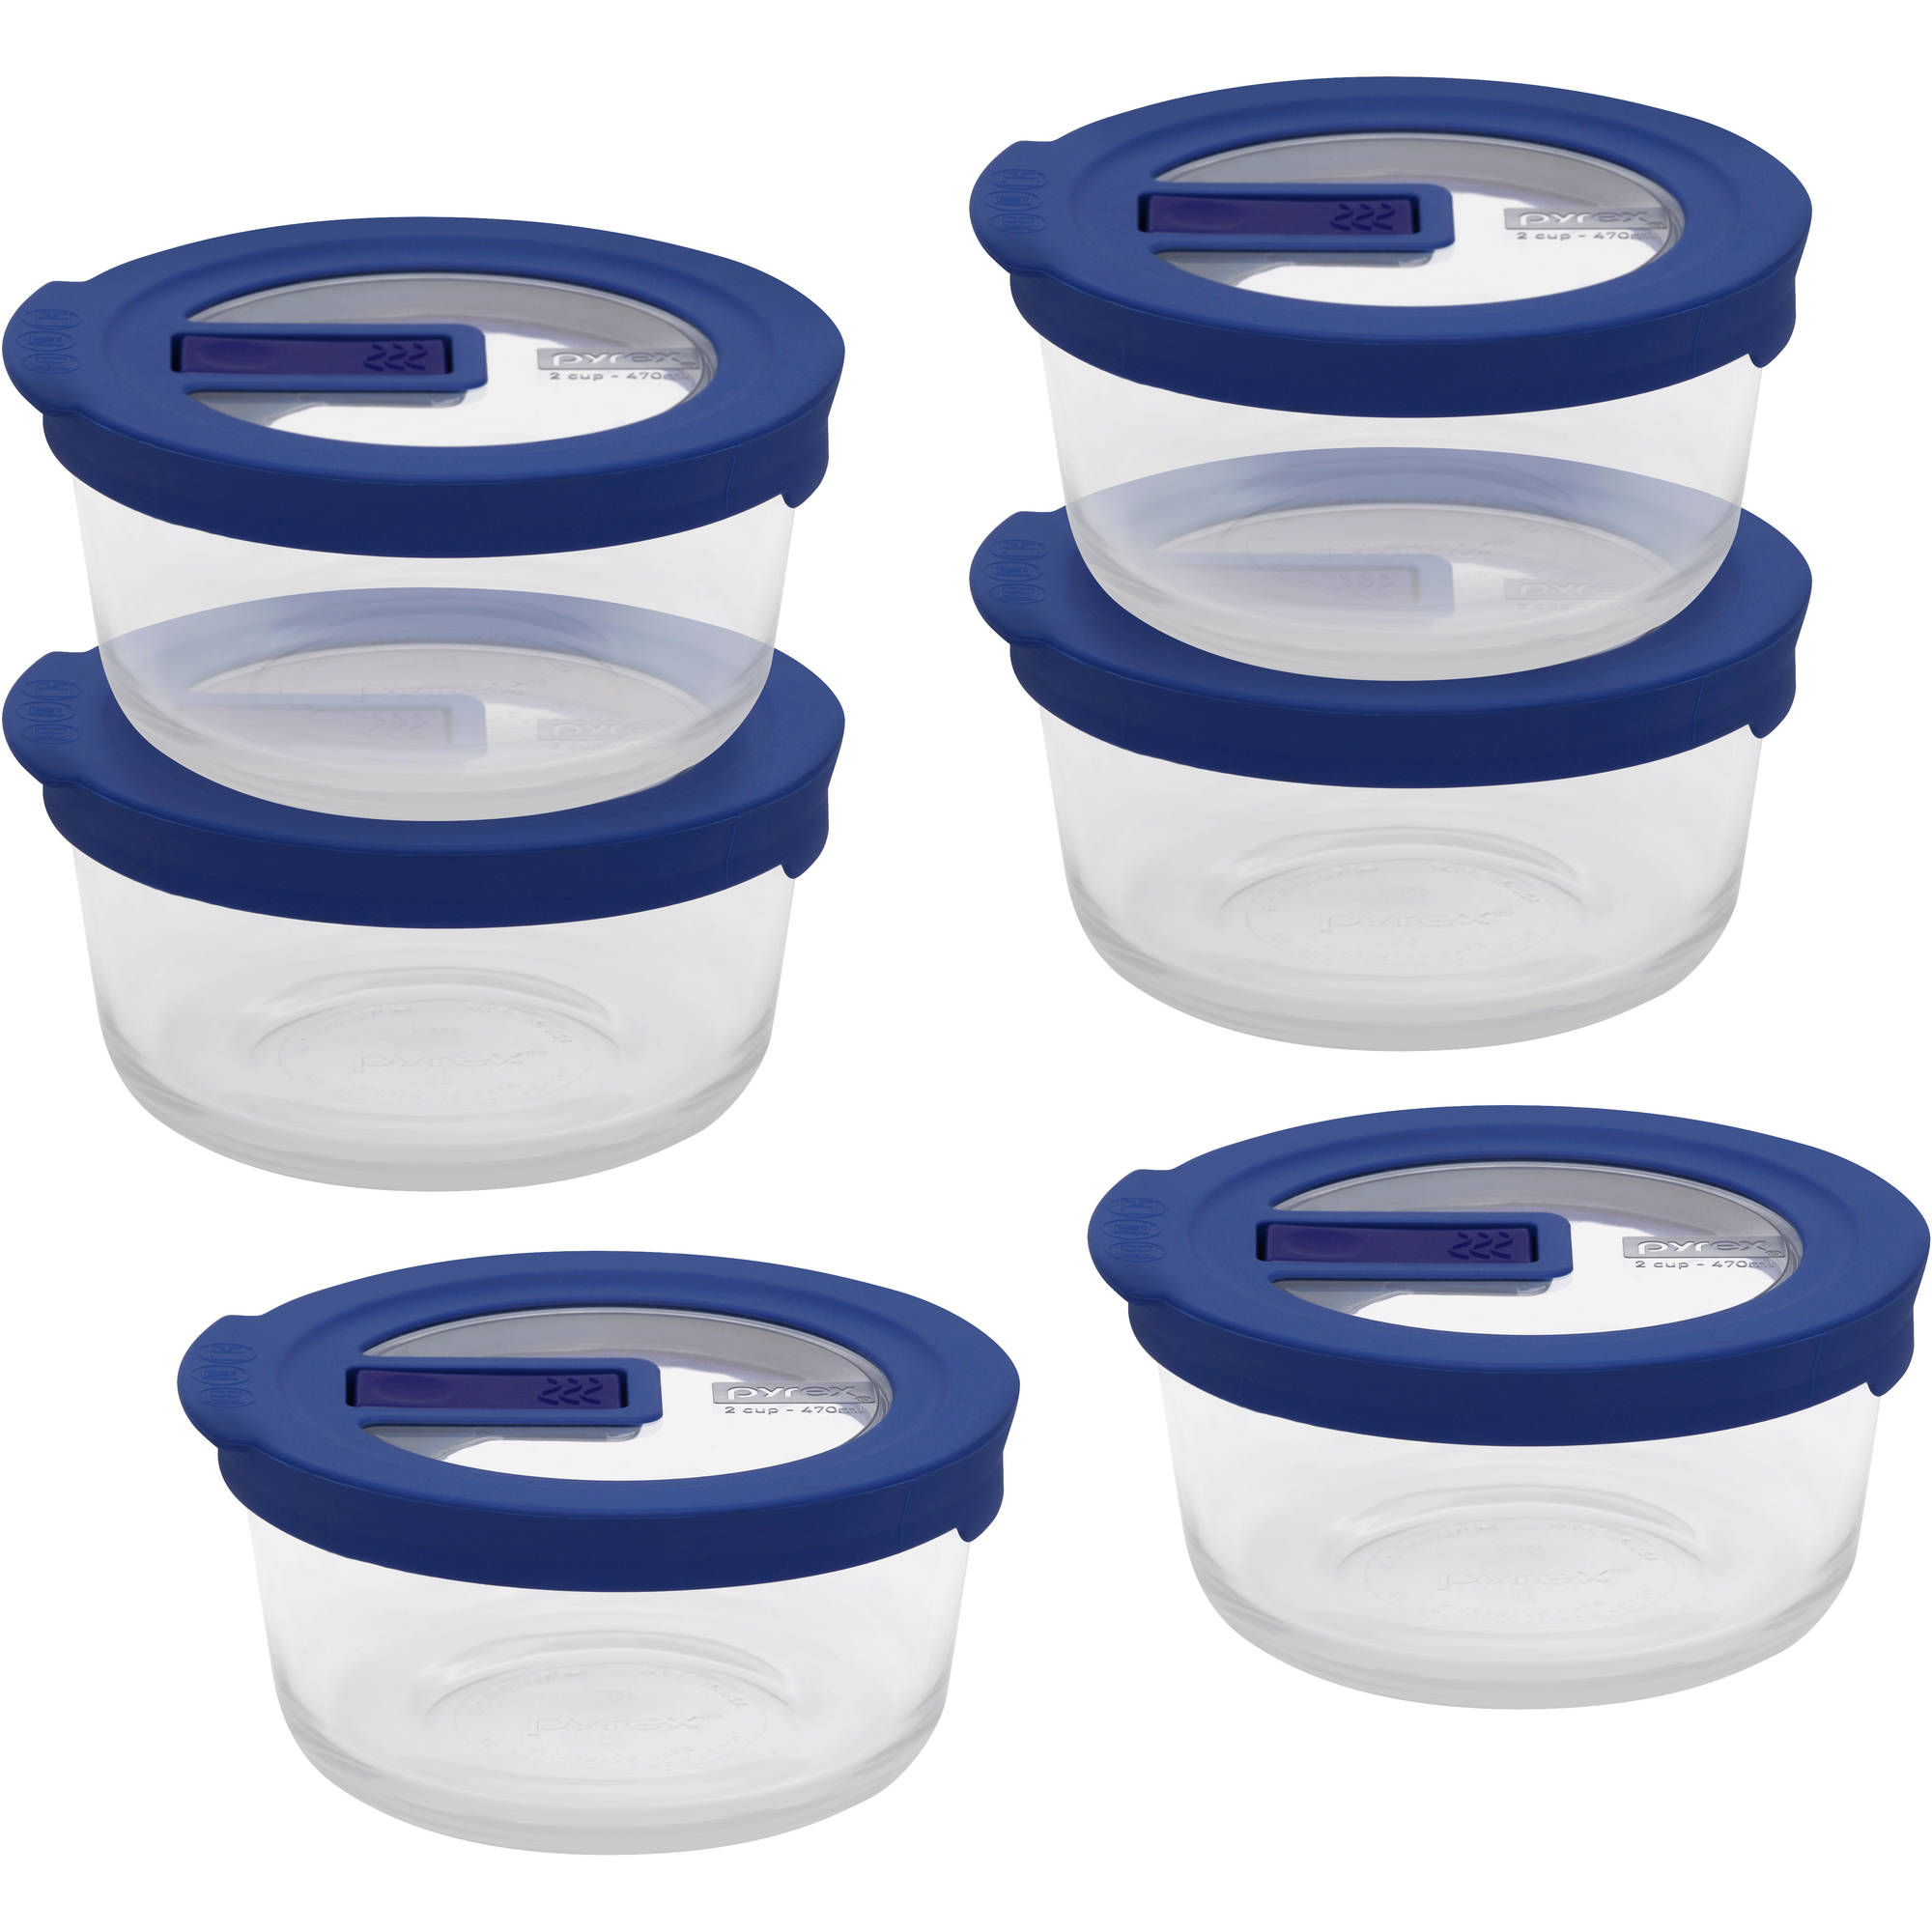 Pyrex No-Leak Clear 2-Cup Round Storage Container, Set of 6